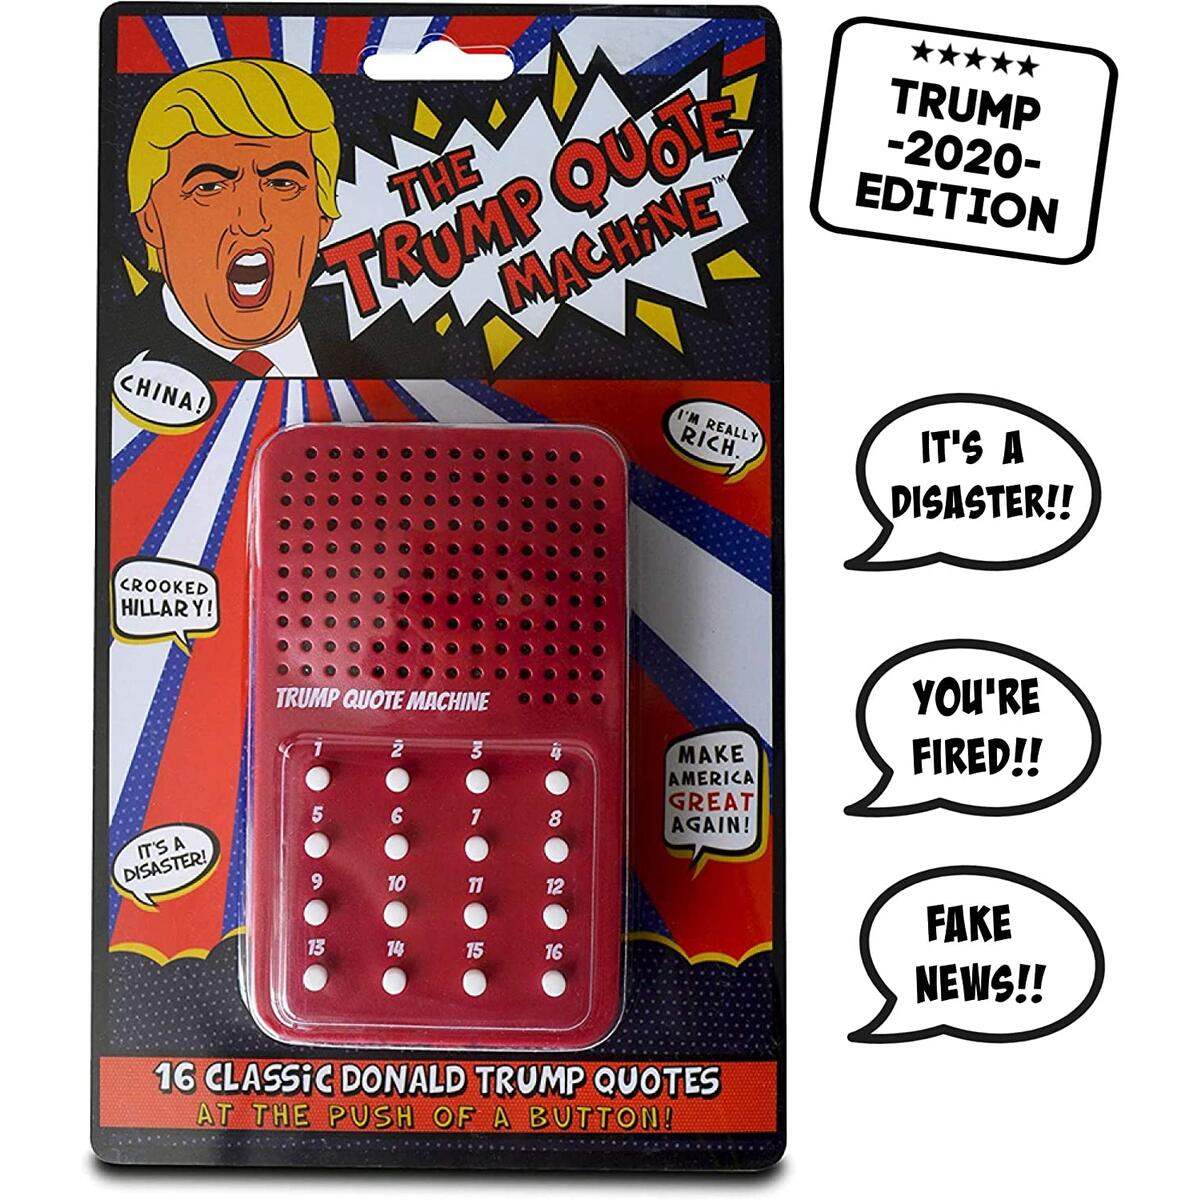 Trump Gag Gift - The Donald Trump Quote Machine - 16 Classic Quotes, One-Liners & Maga Brilliance from President Trump Himself - A Funny Gag Gift to Make America Great Again